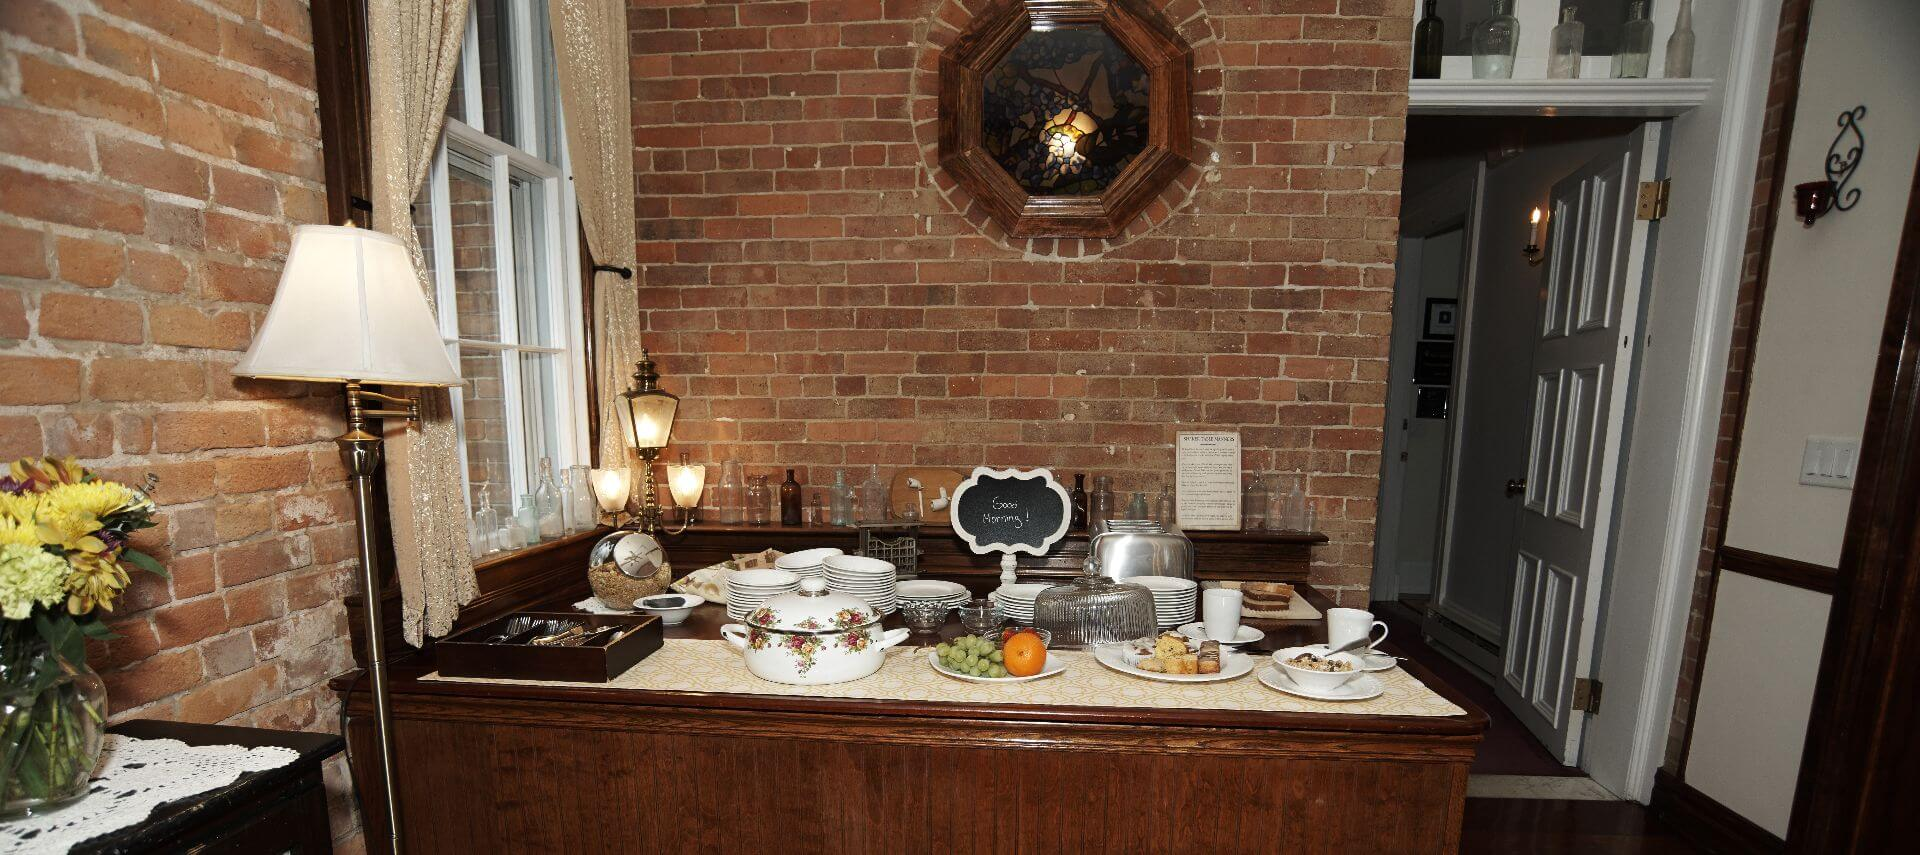 Breakfast buffet with fruit, pastries, cereal and plates and cutlery.